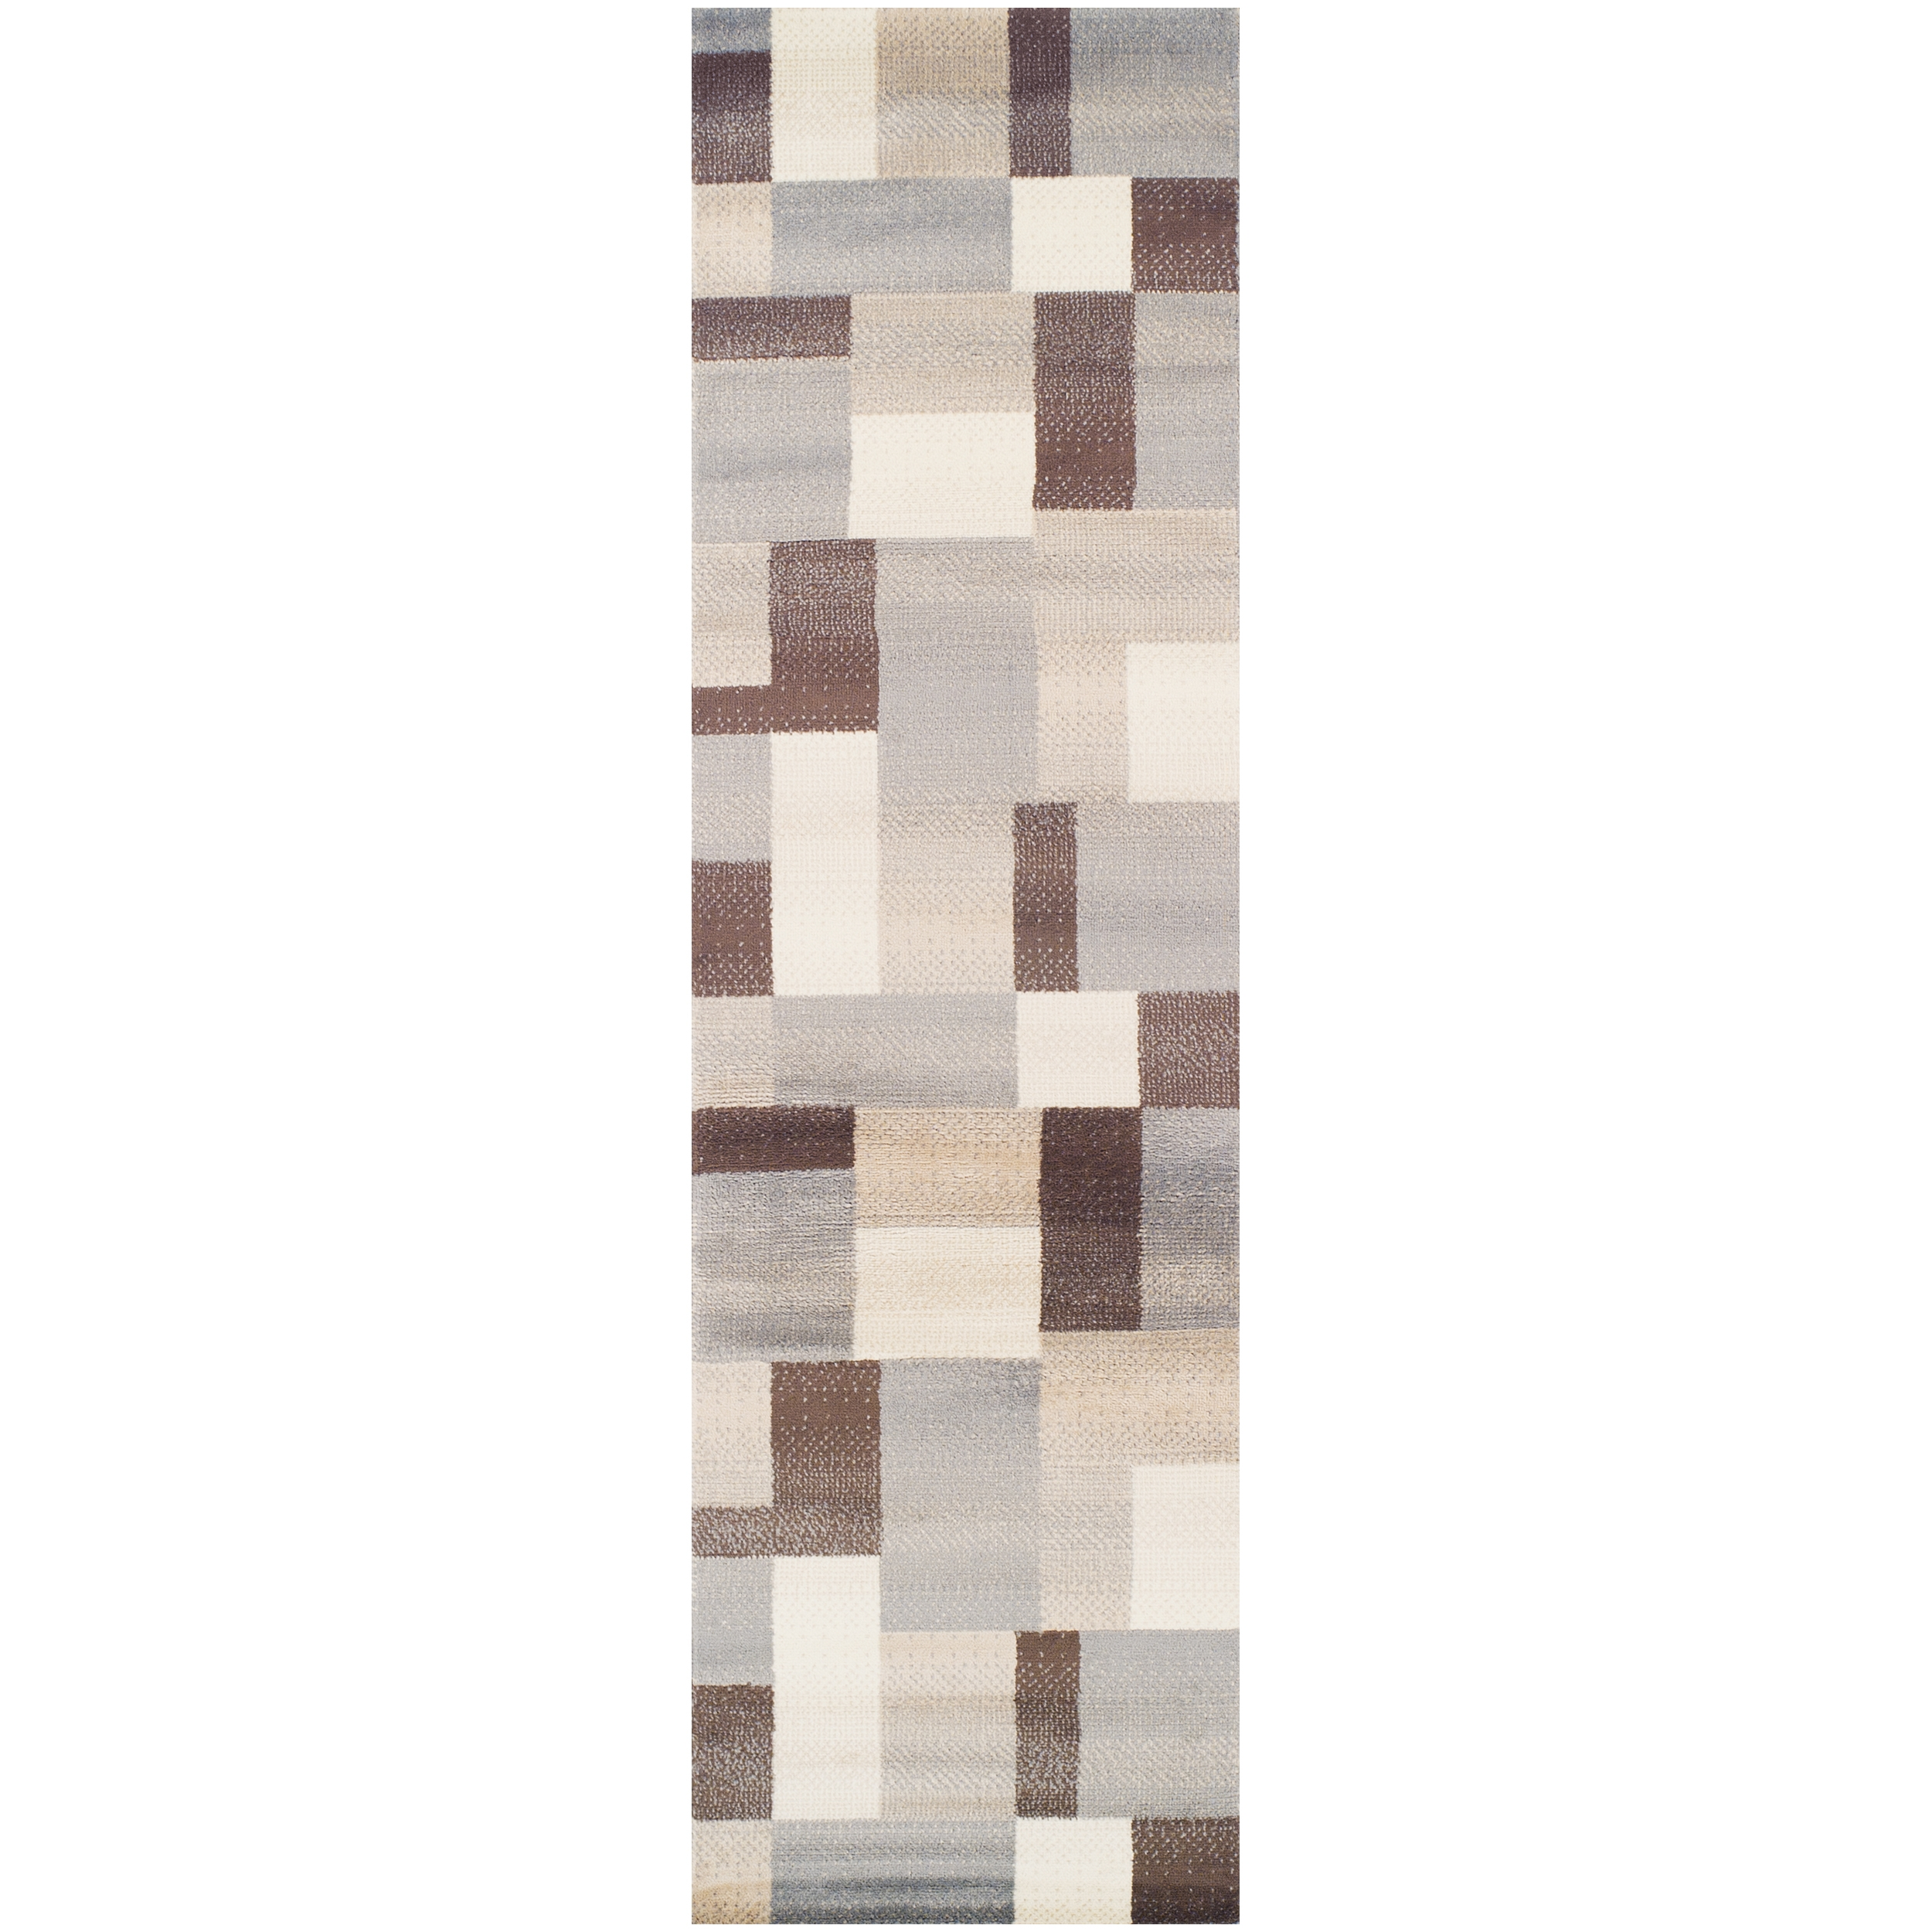 Runner rugs safavieh four seasons wonderland 2foot x 3foot for Contemporary runner rugs for hallway